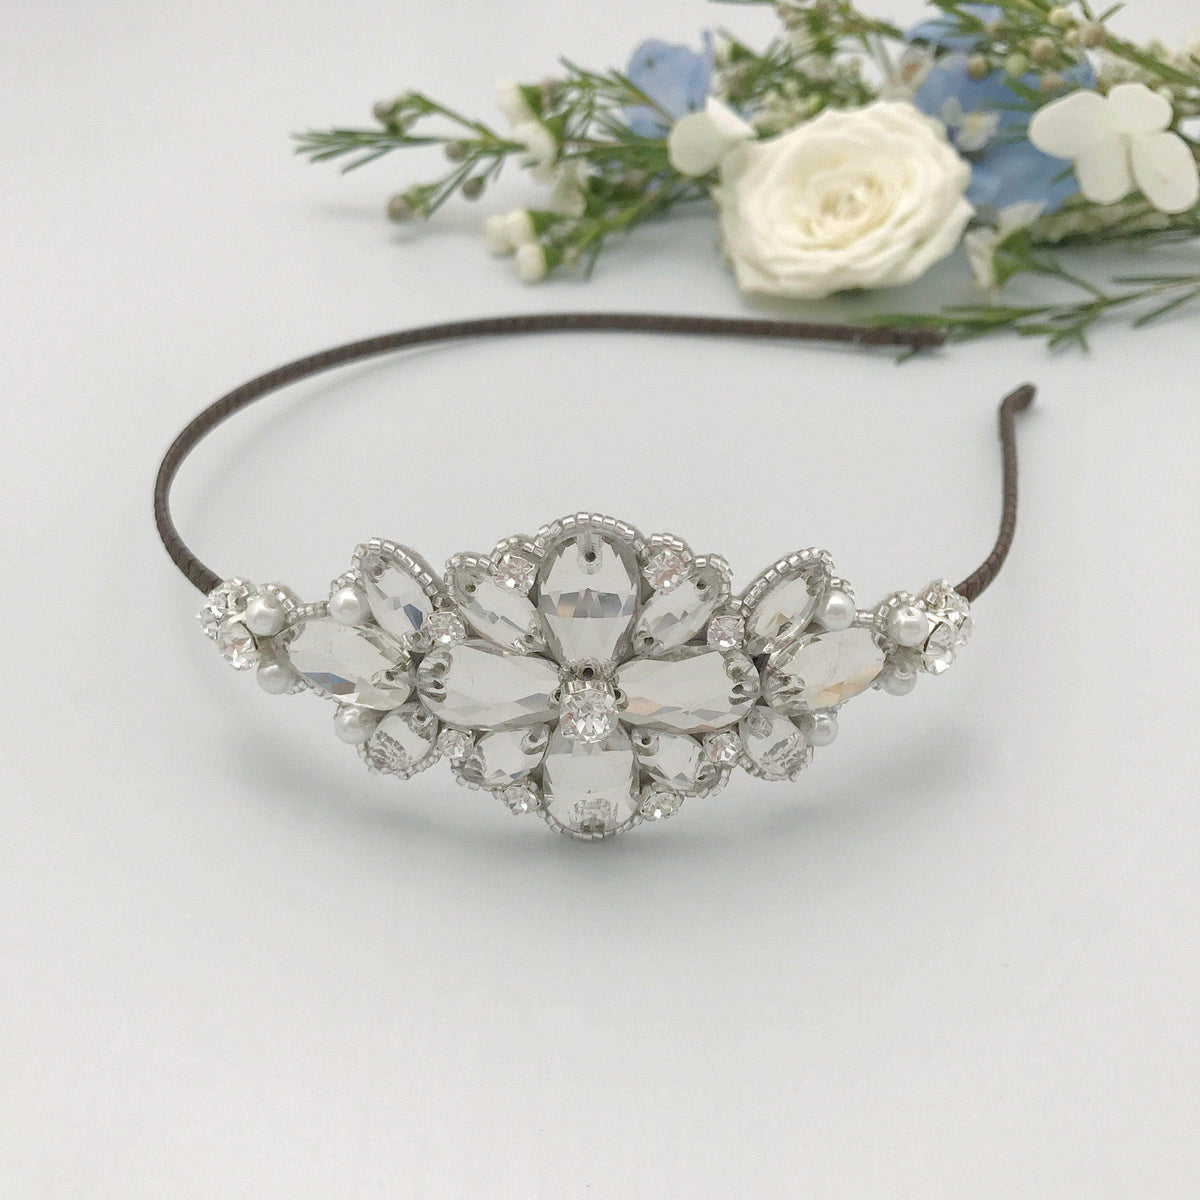 Silver wedding headband with crystals and pearls - 'Charia'